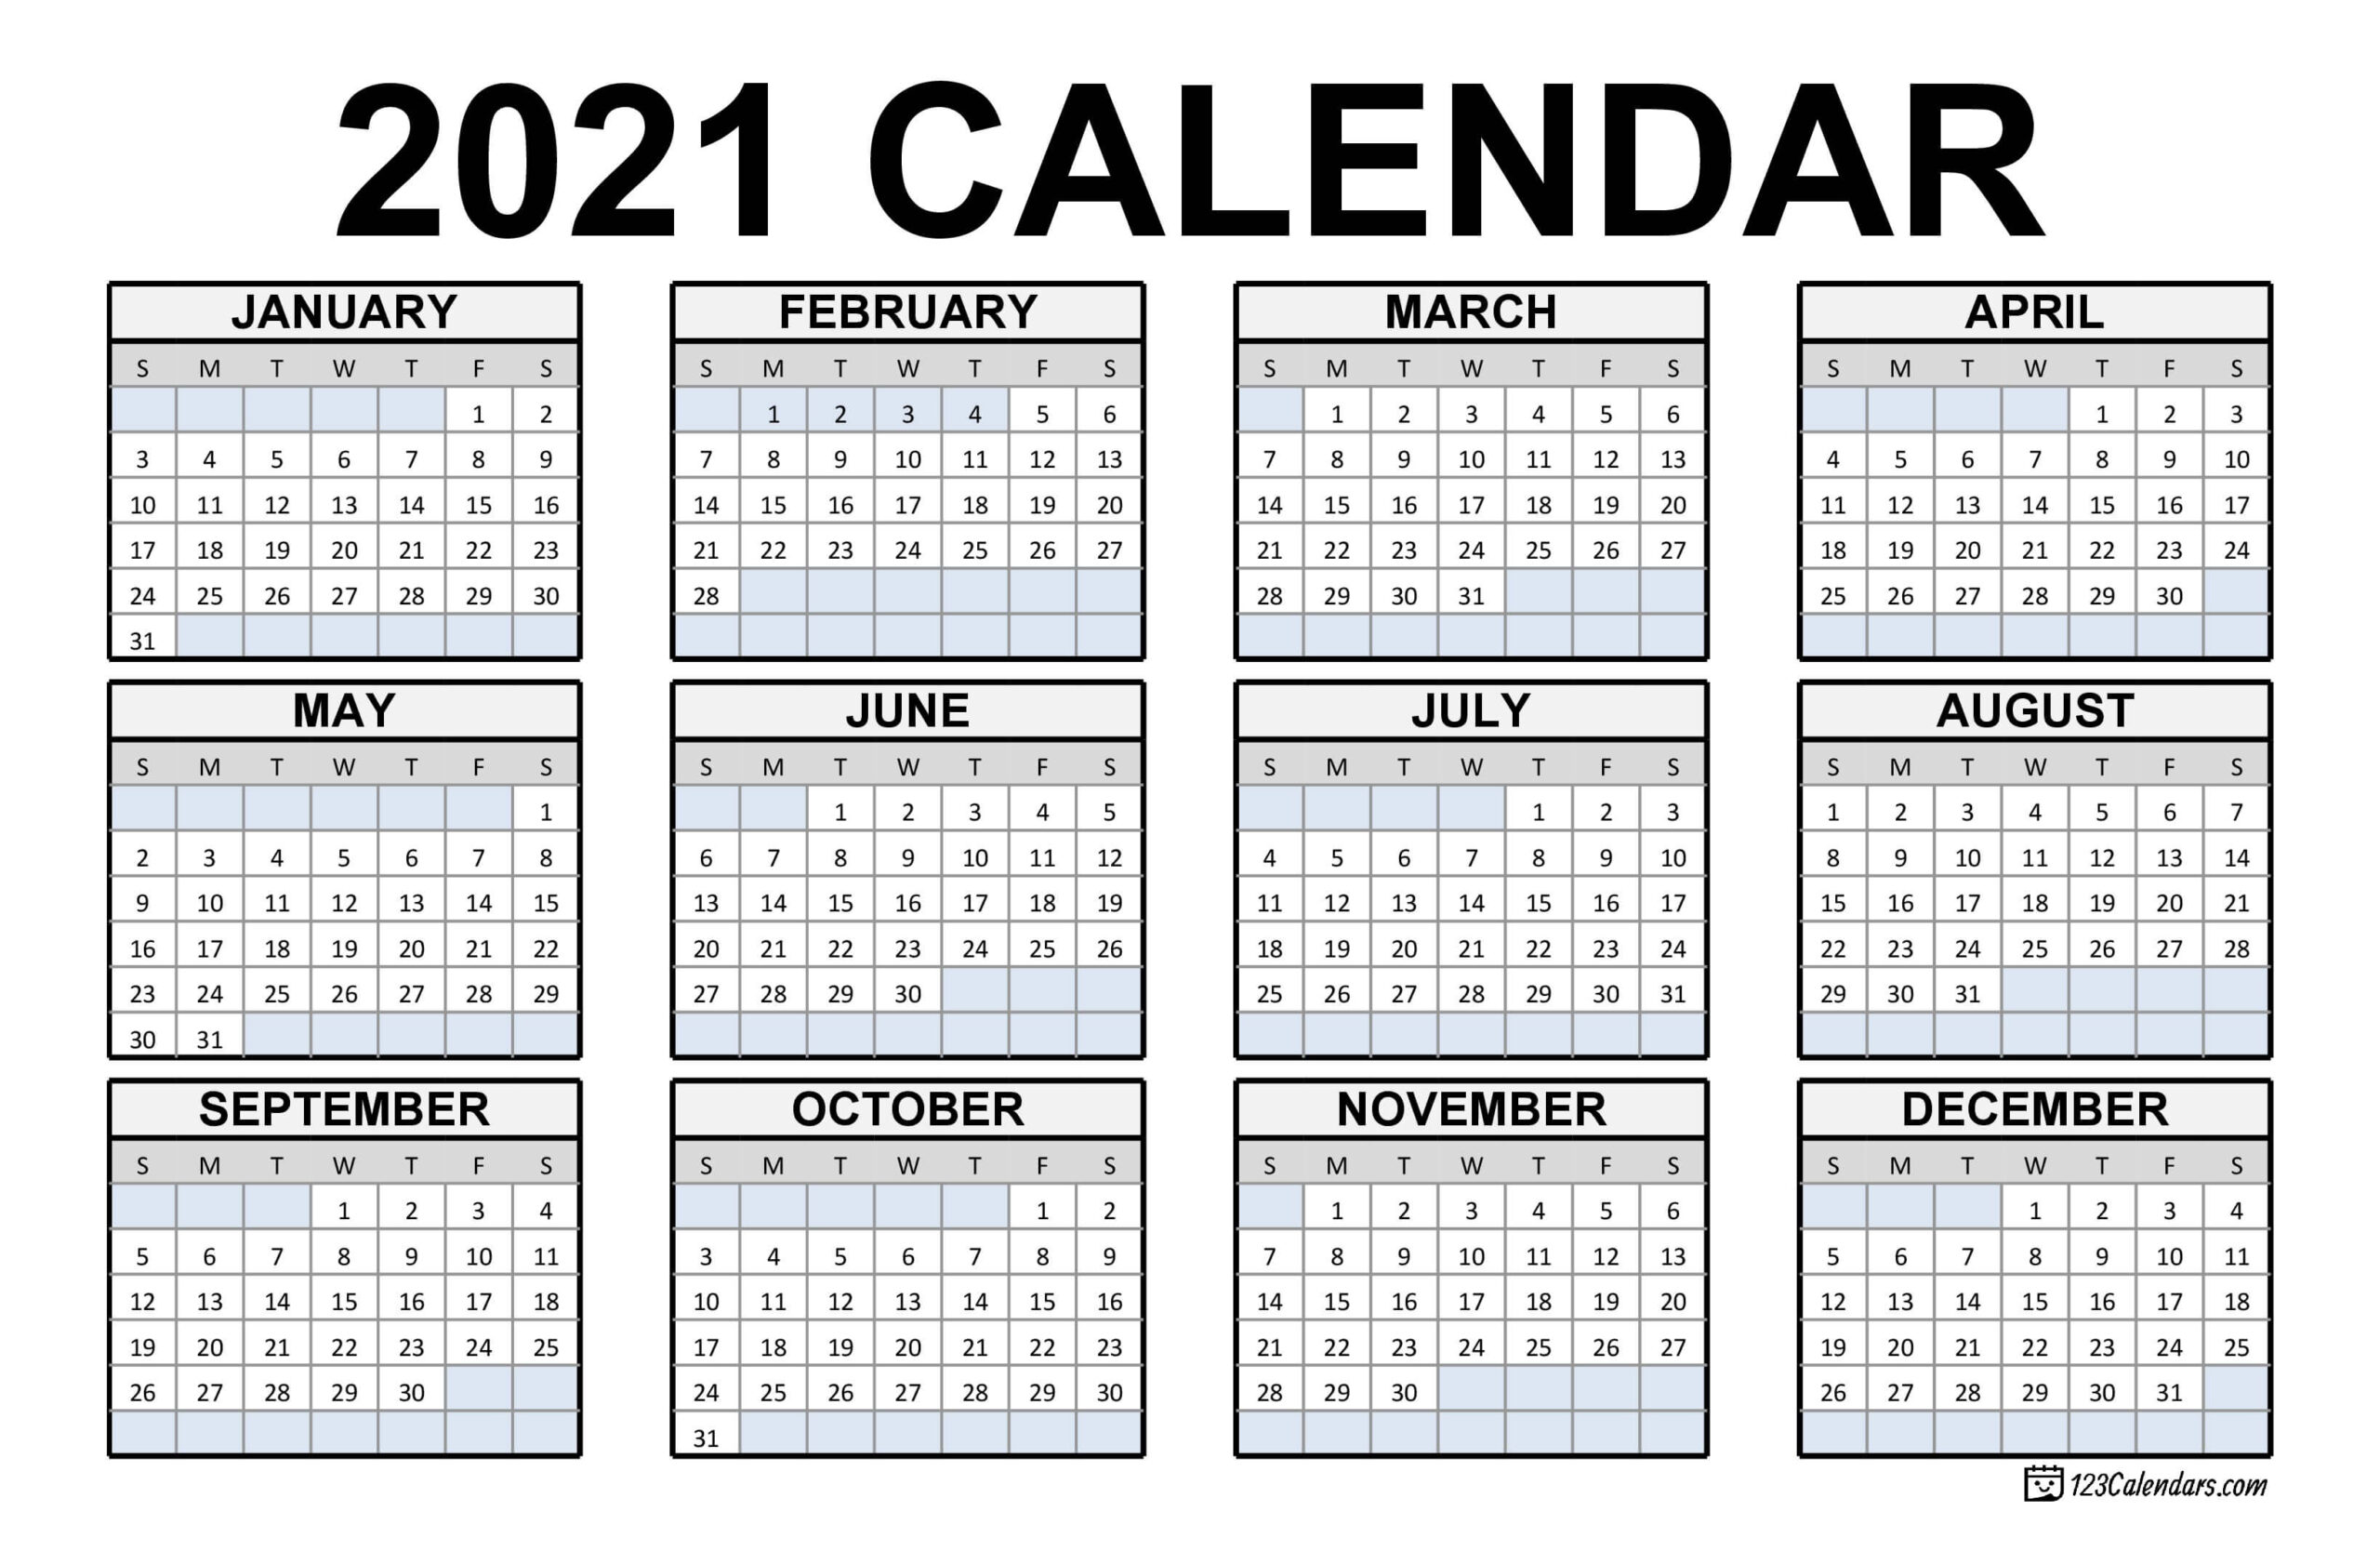 2021 Printable Calendar | 123Calendars for Free Printable Pocket Calendar 2021